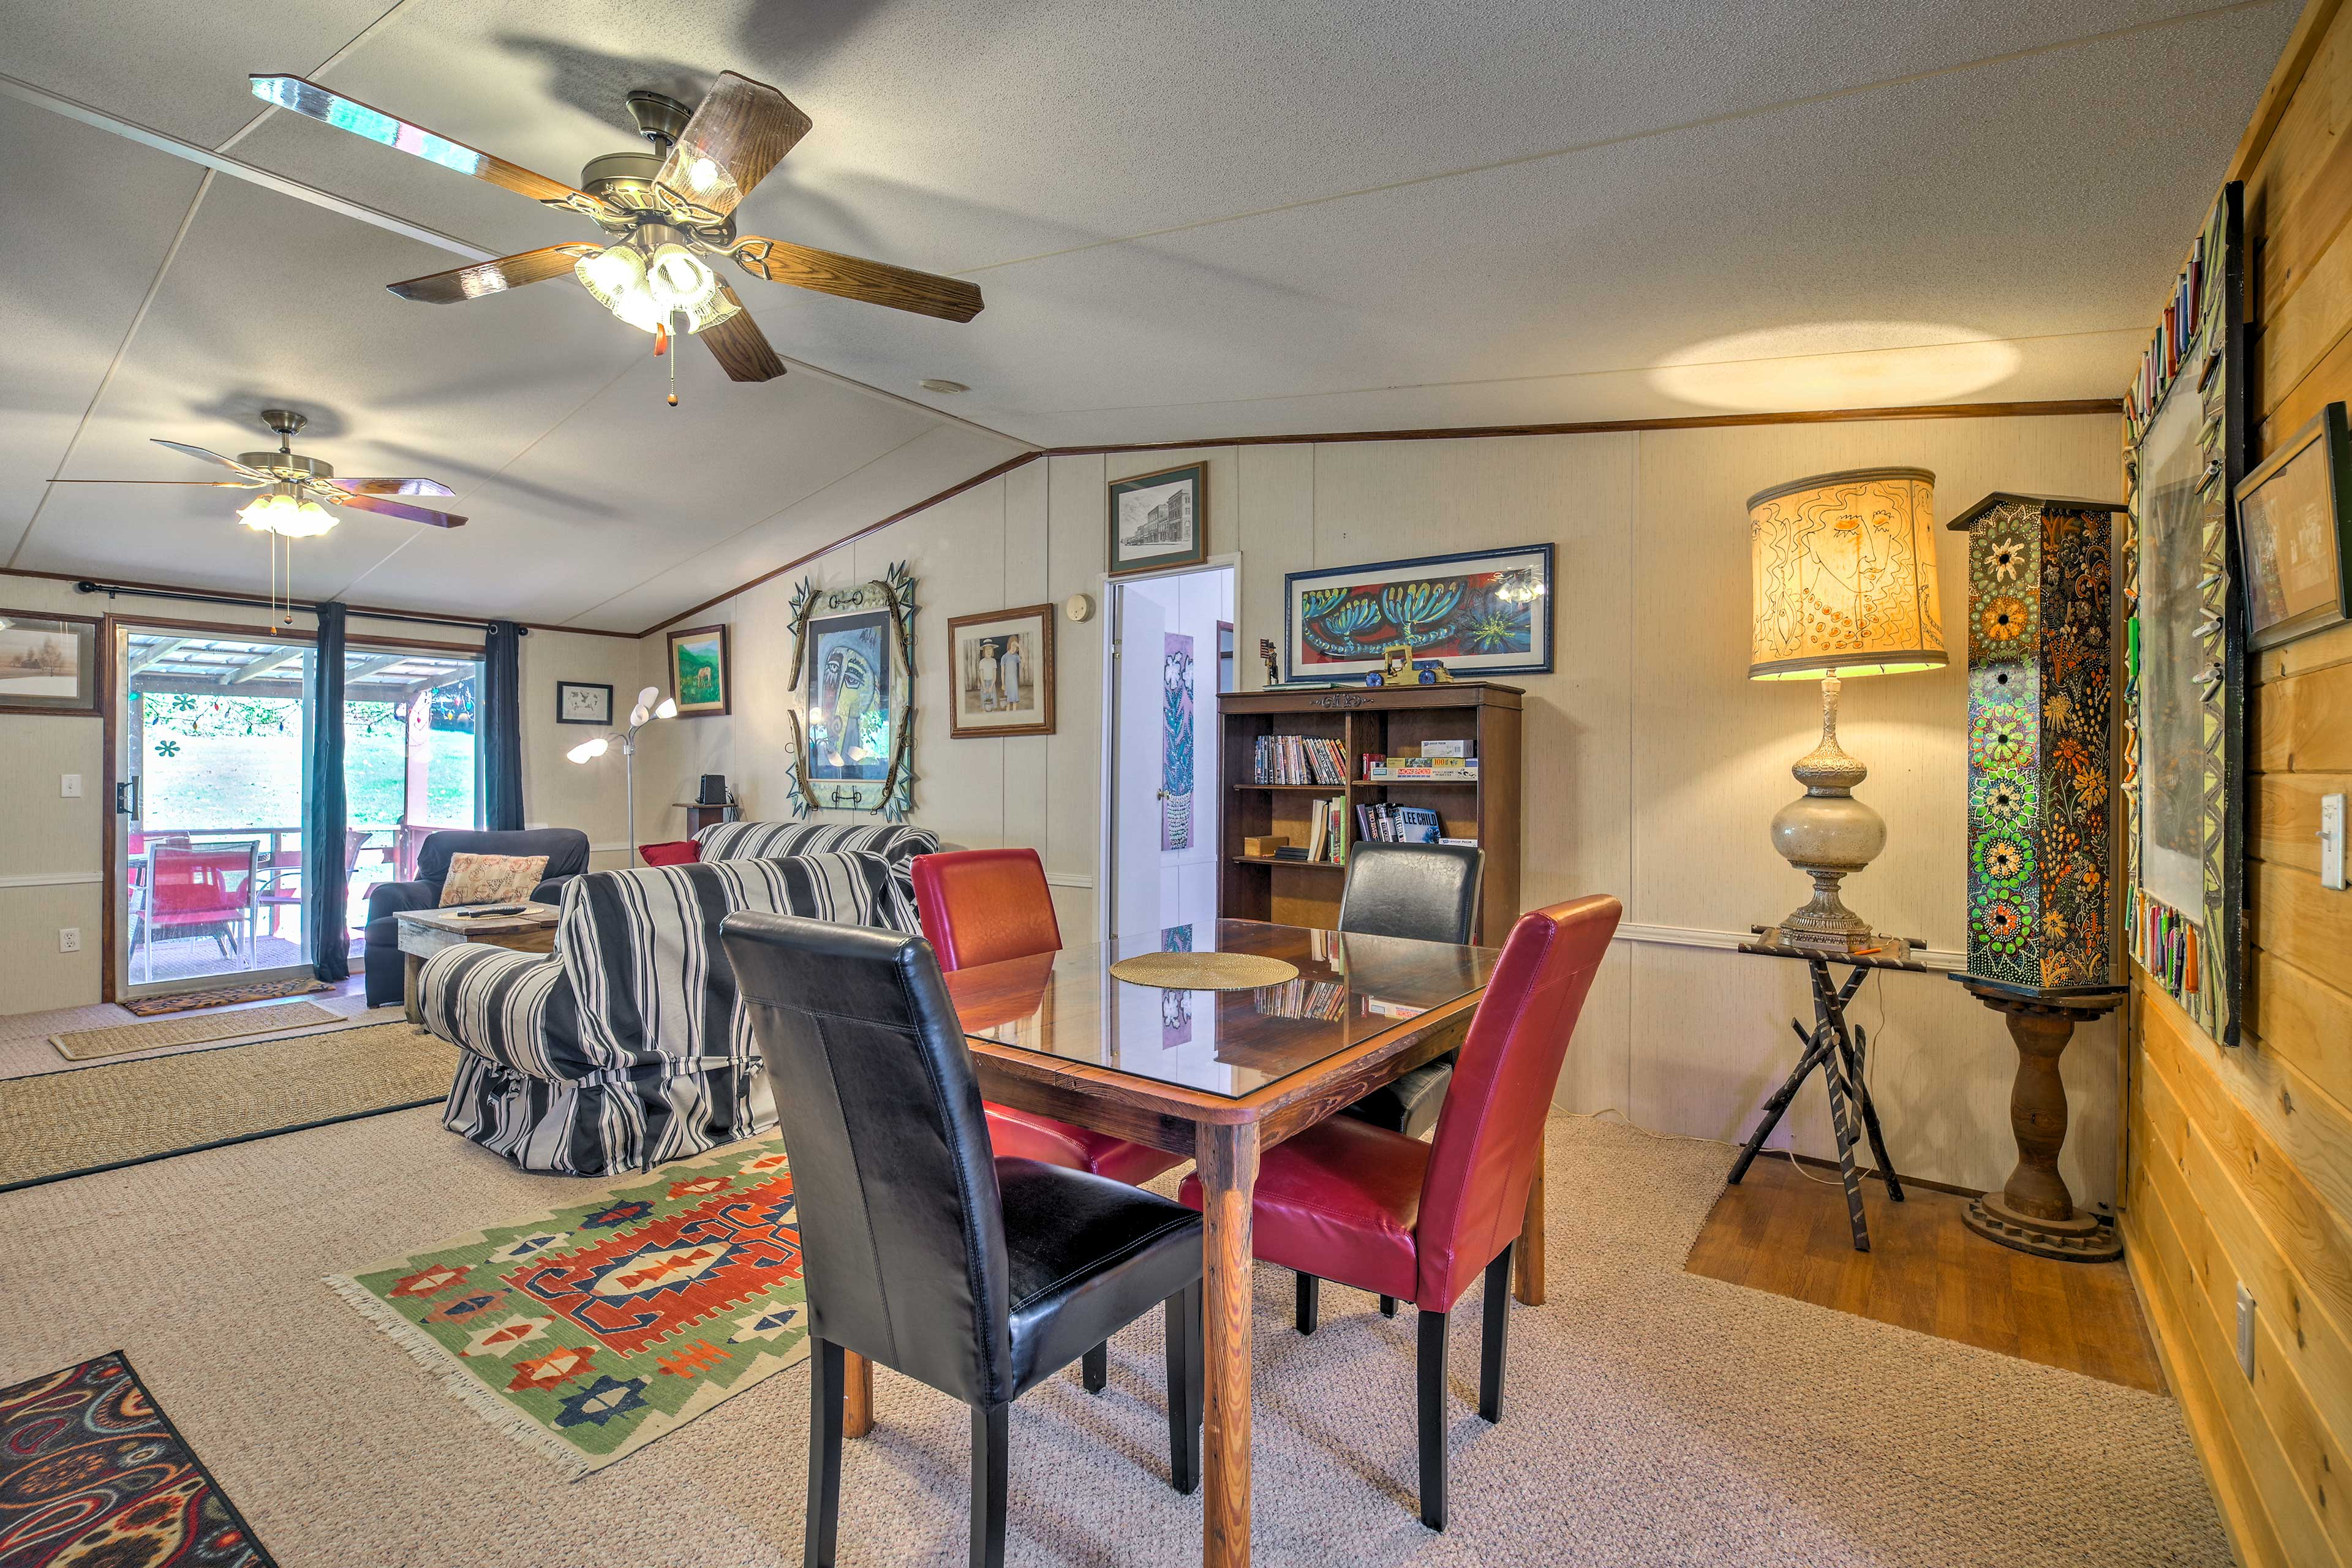 You're sure to love the funky decor and artistic accents throughout the home.